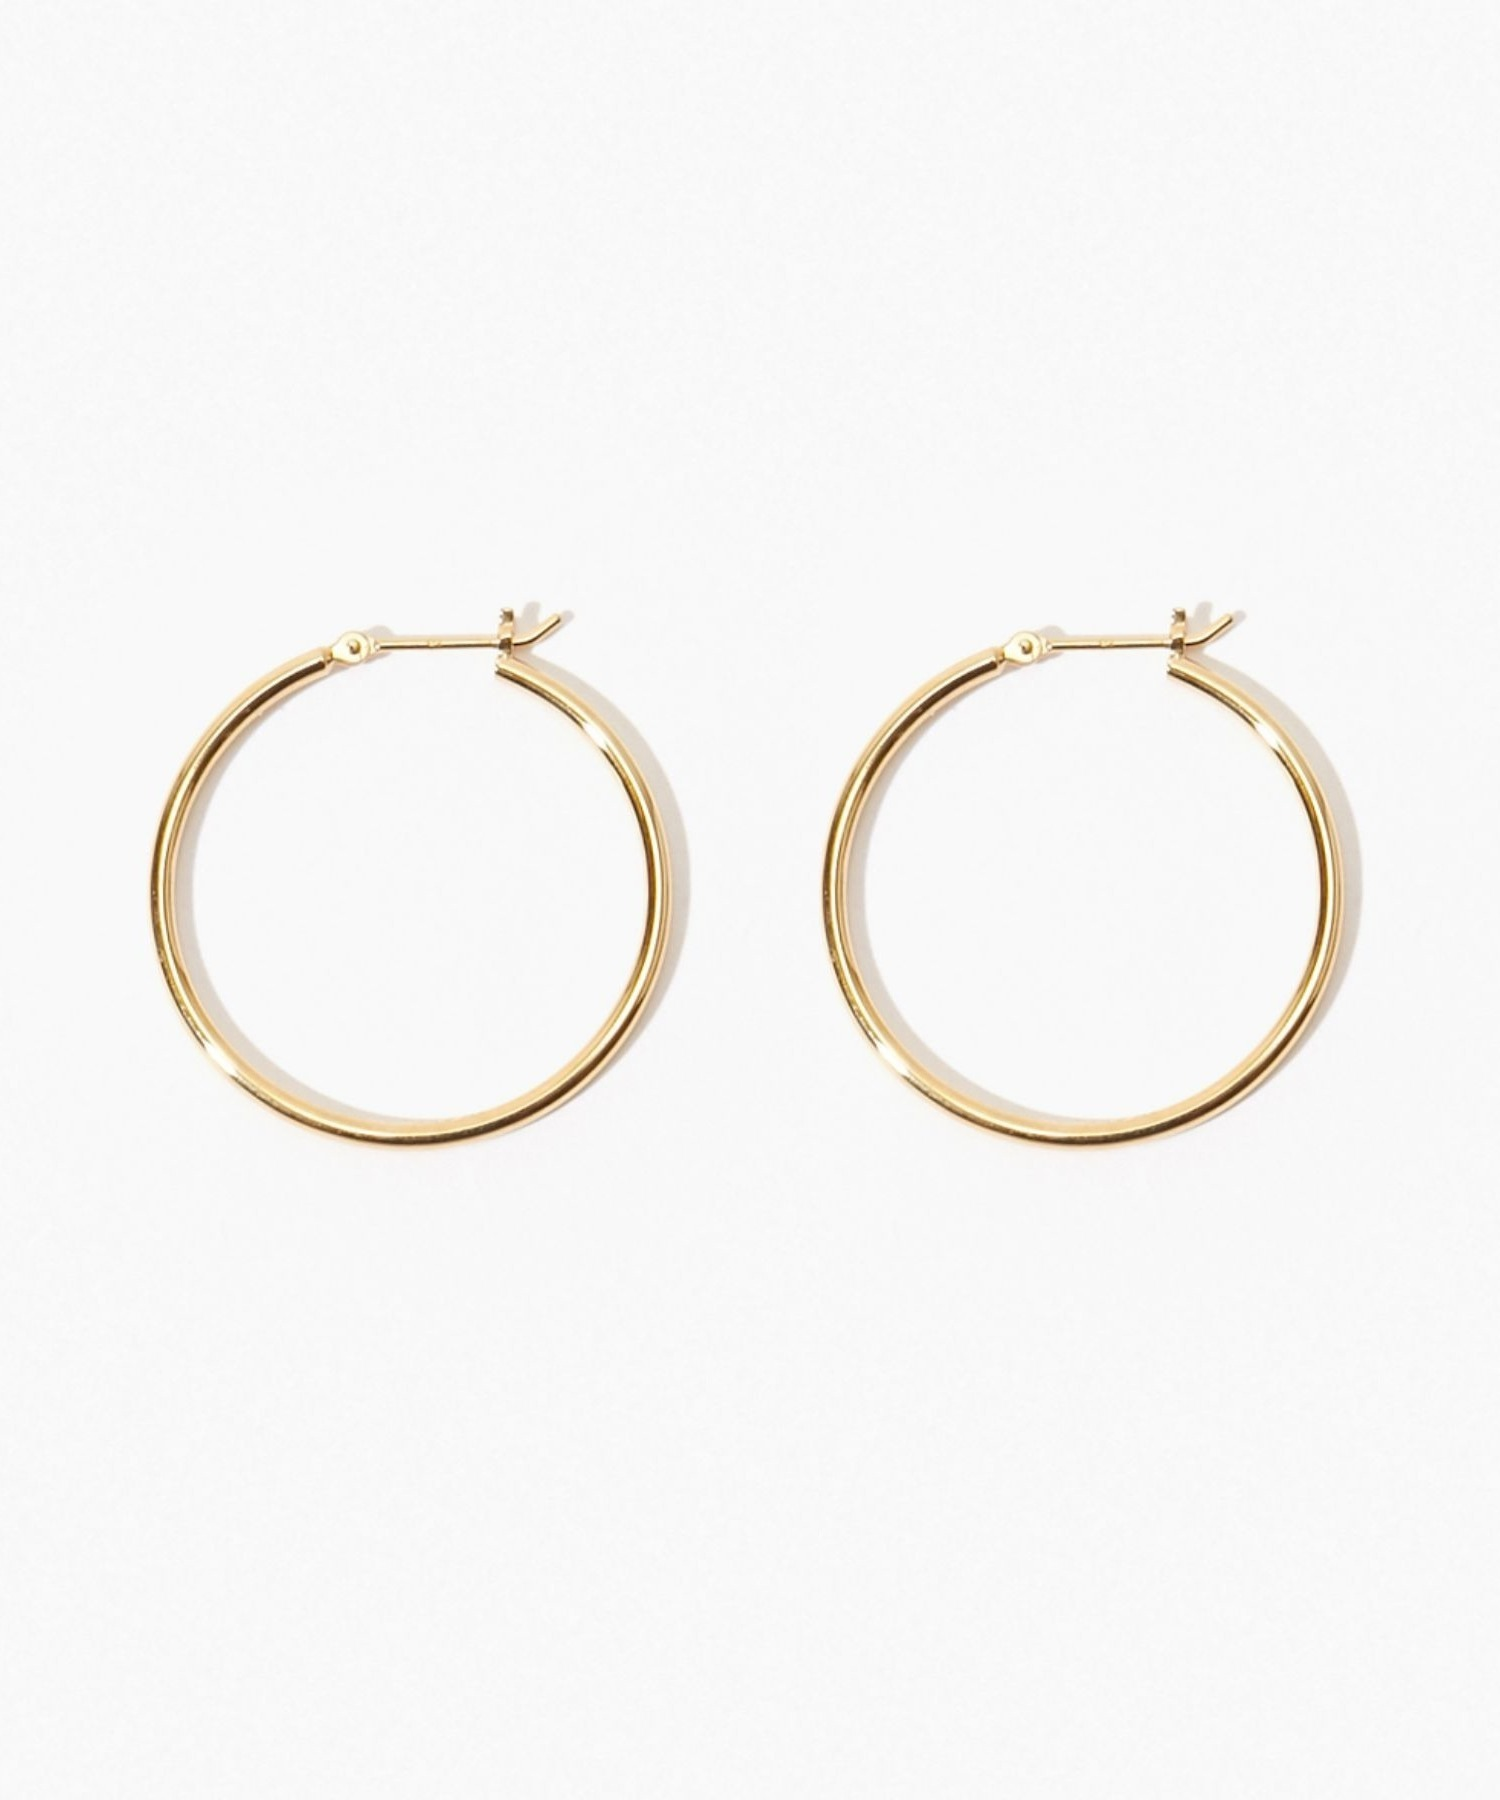 [bone] organic thin middle hoop pierced earring